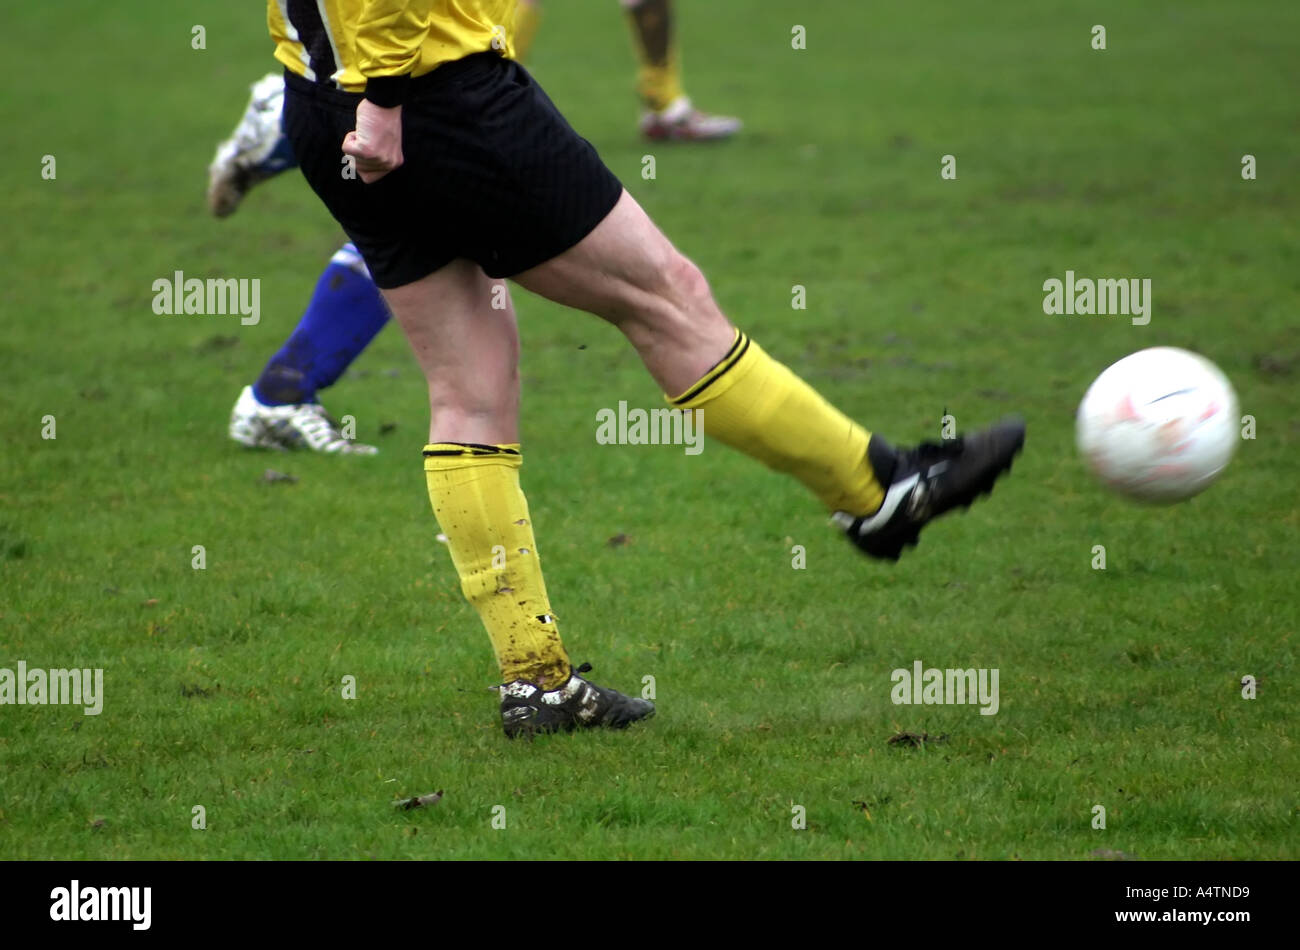 Footballer kicking a ball - Stock Image